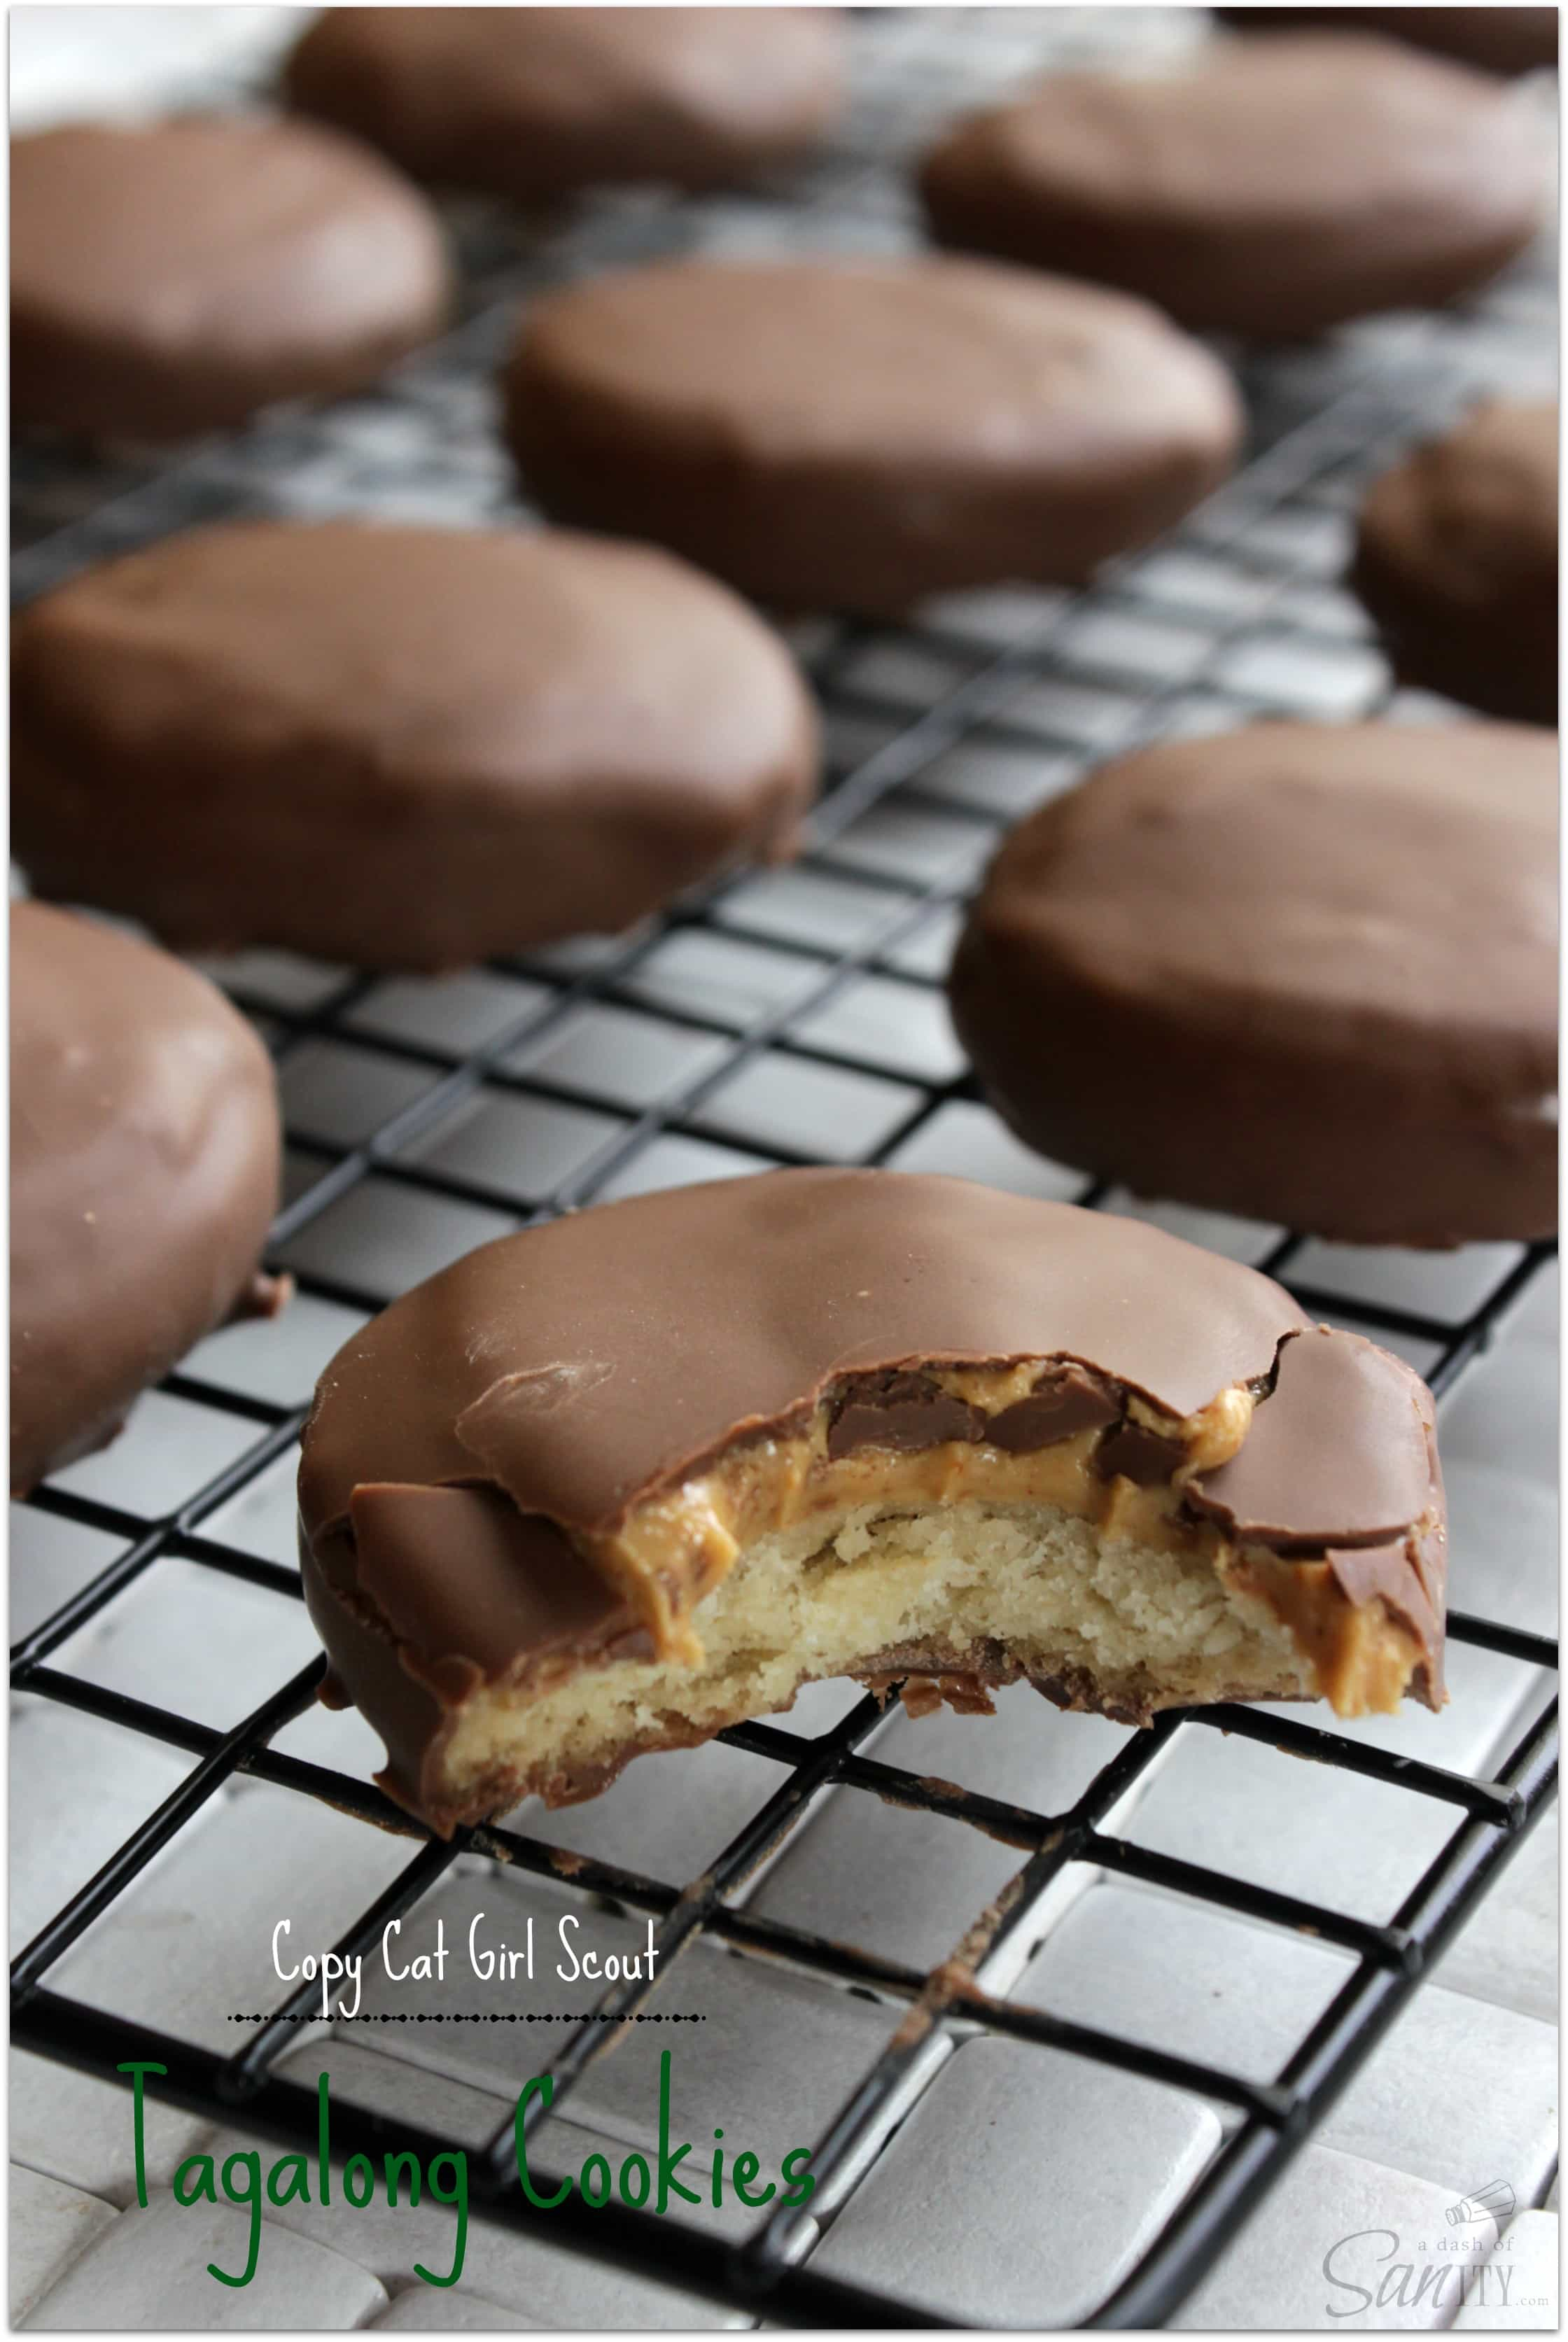 Copycat Girl Scout Tagalong Cookies